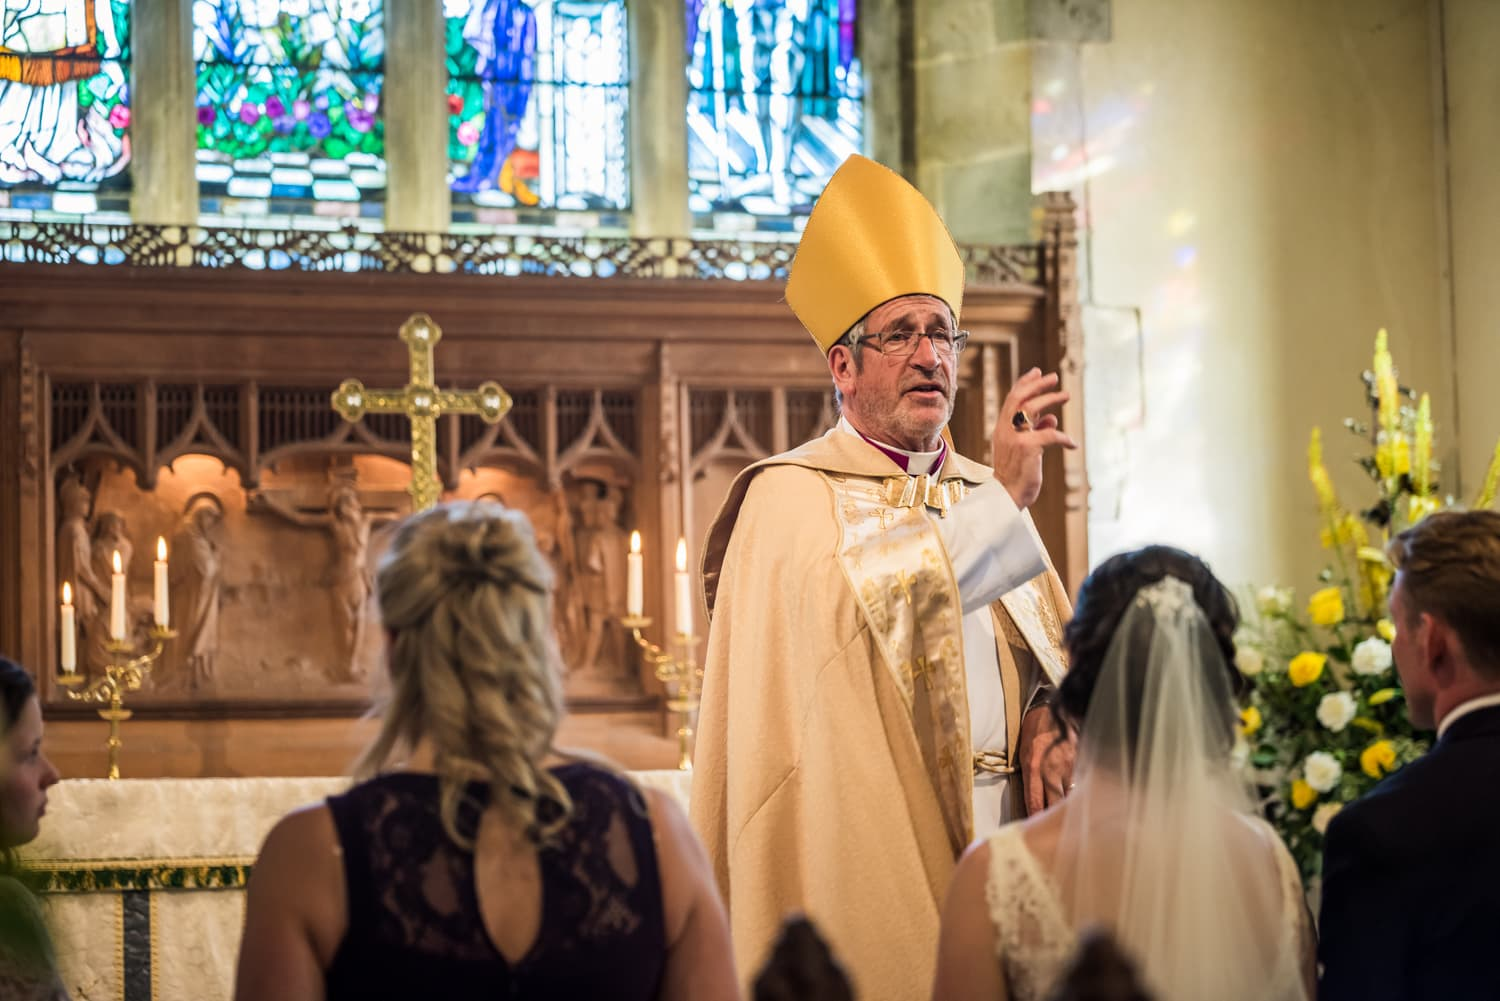 053-wedding-bishop-reading.jpg